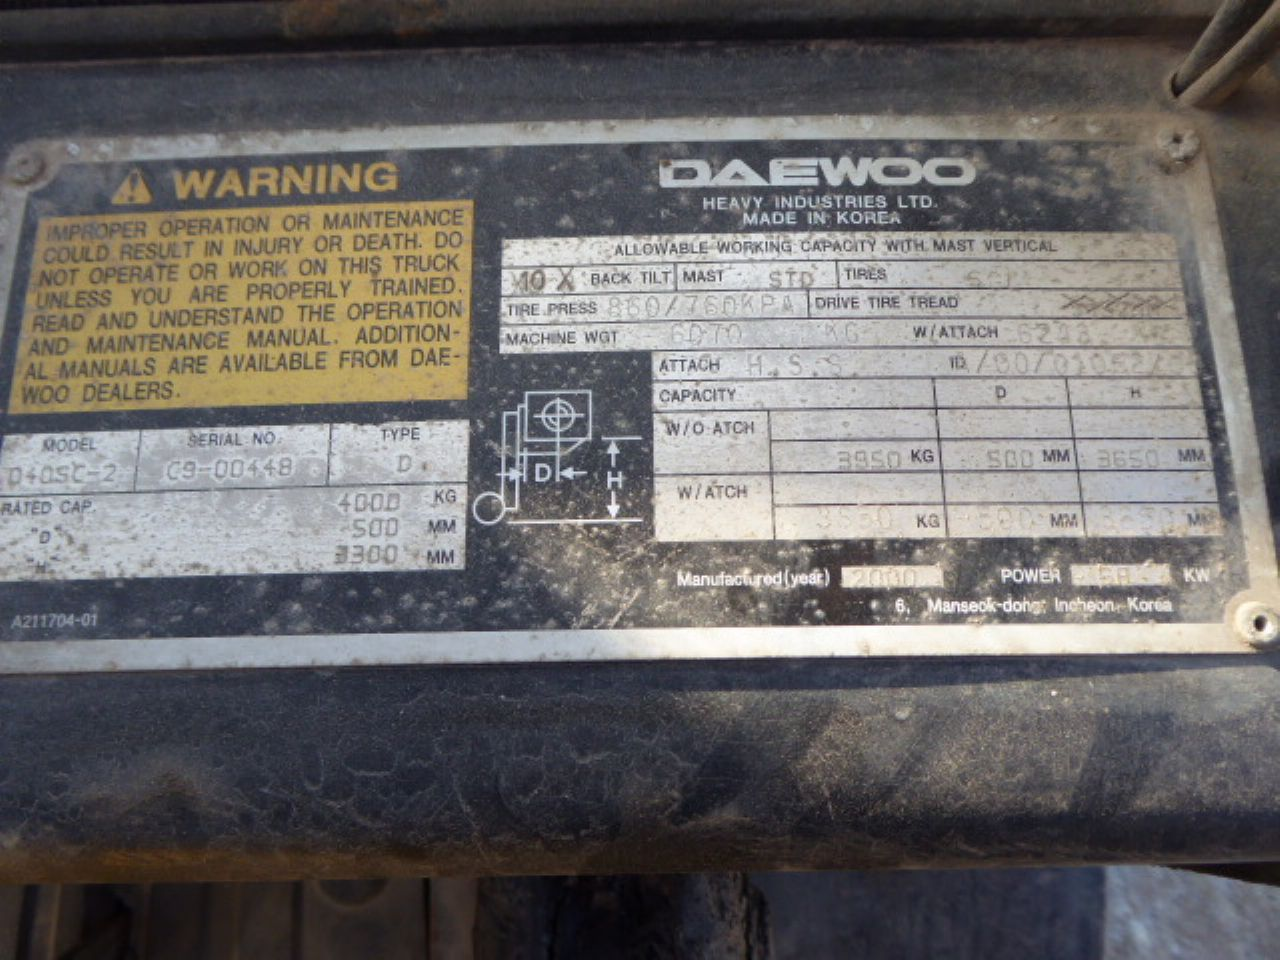 DAEWOO D40SC-2 FORKLIFT - Picture 7